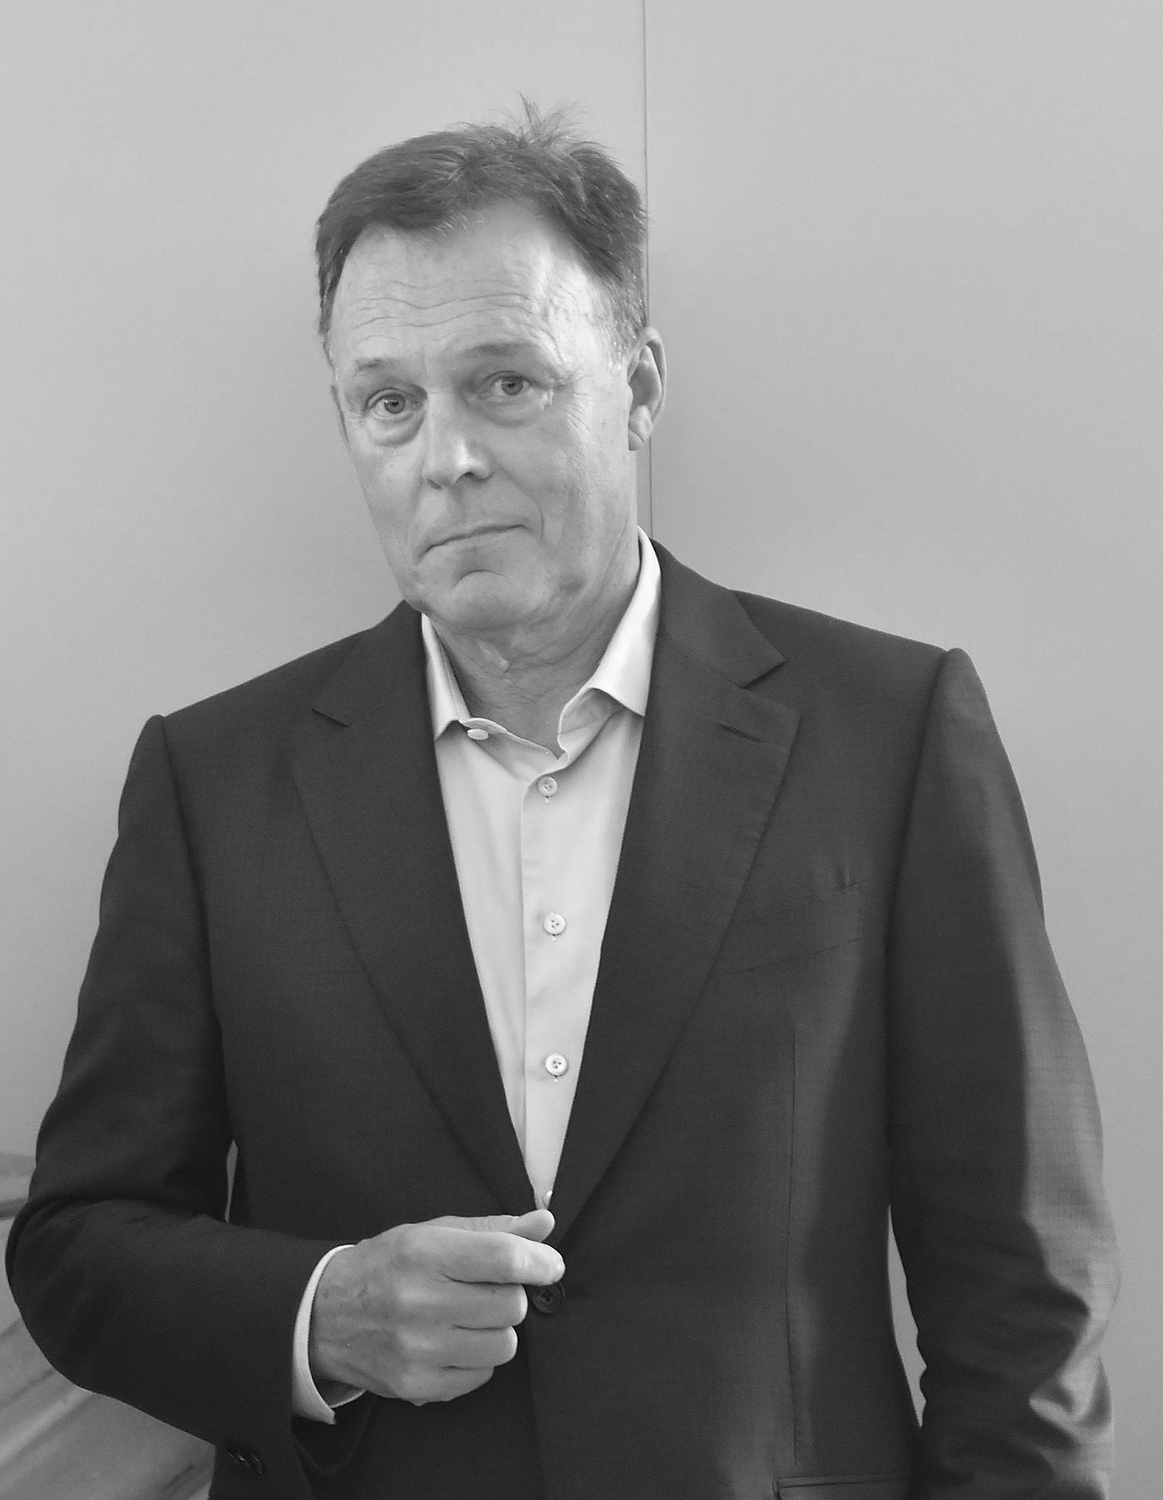 Thomas Oppermann, Alumnus der Universität Göttingen